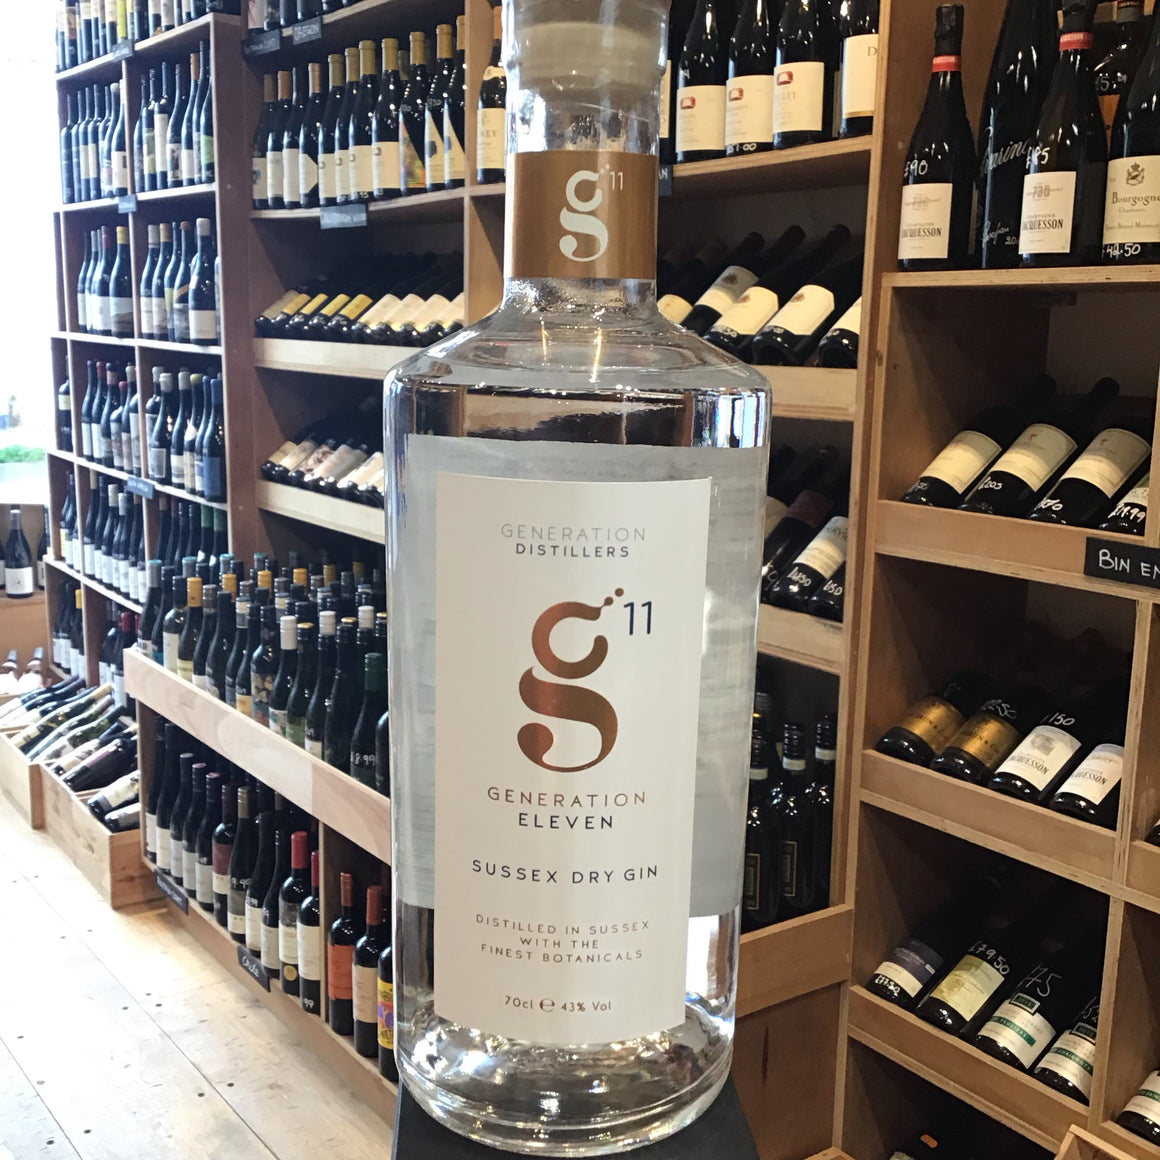 Generation 11 Sussex Dry Gin 70cl 43% - Butlers Wine Cellar Brighton